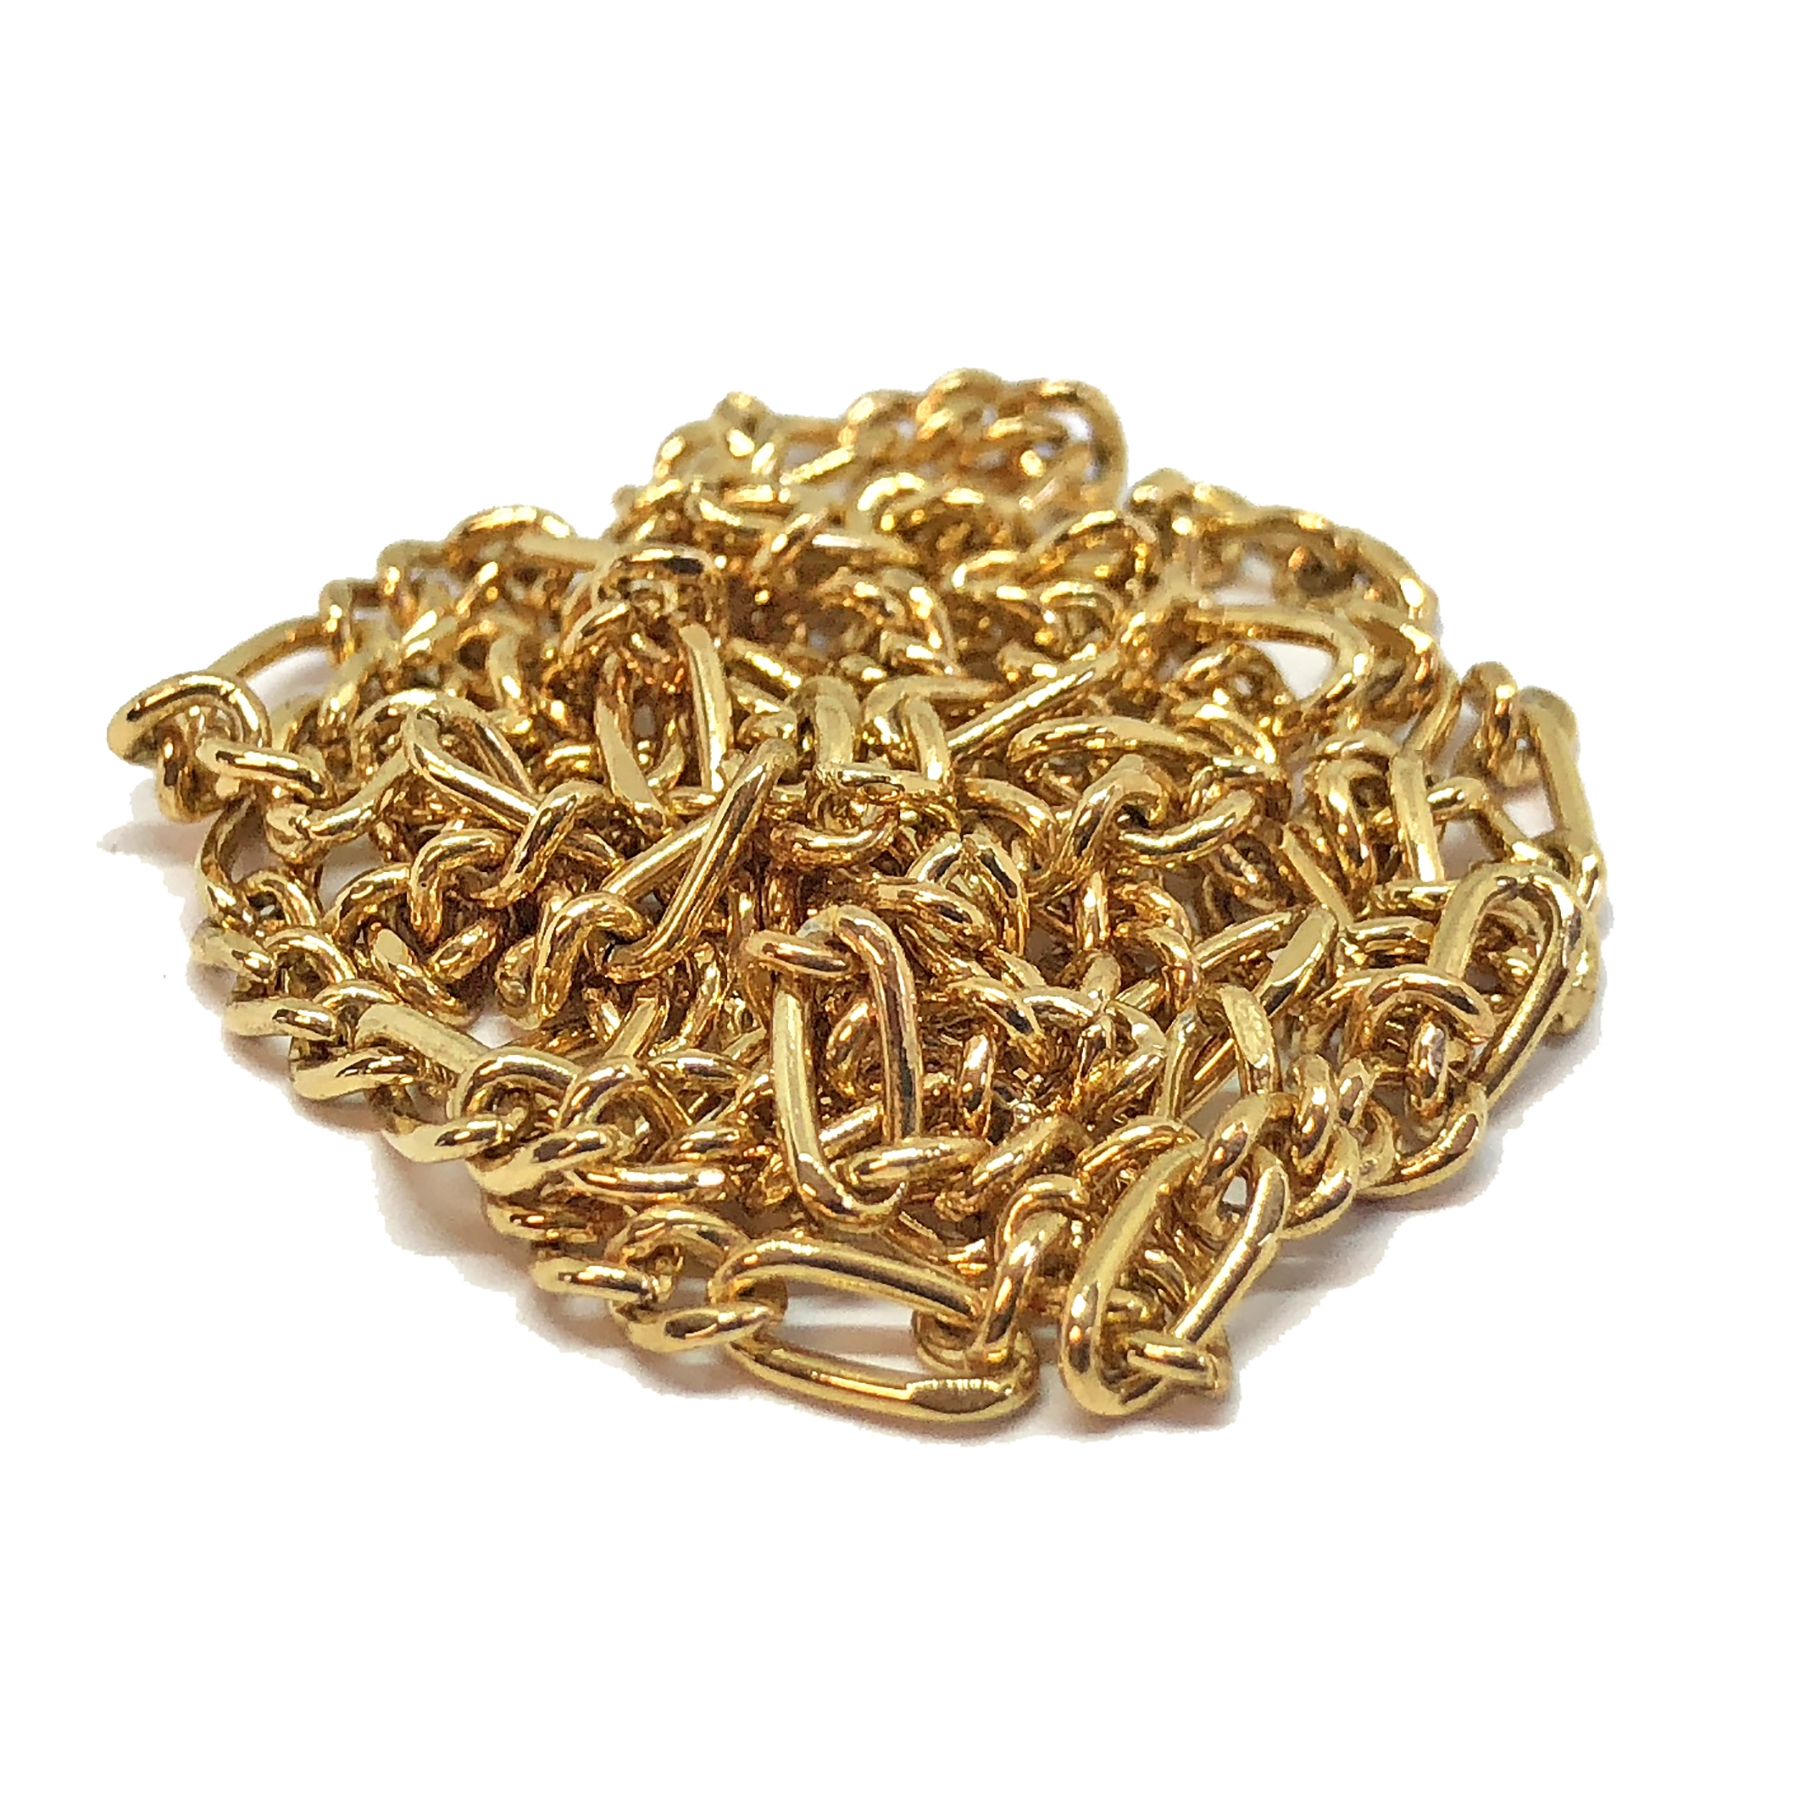 jewelry chain, figaro chain, 04038, gold plate, antique gold, B'sue Boutiques, nickel free, US made, brass jewelry supplies, vintage jewelry supplies, beading supplies, bracelet chain, necklace chain